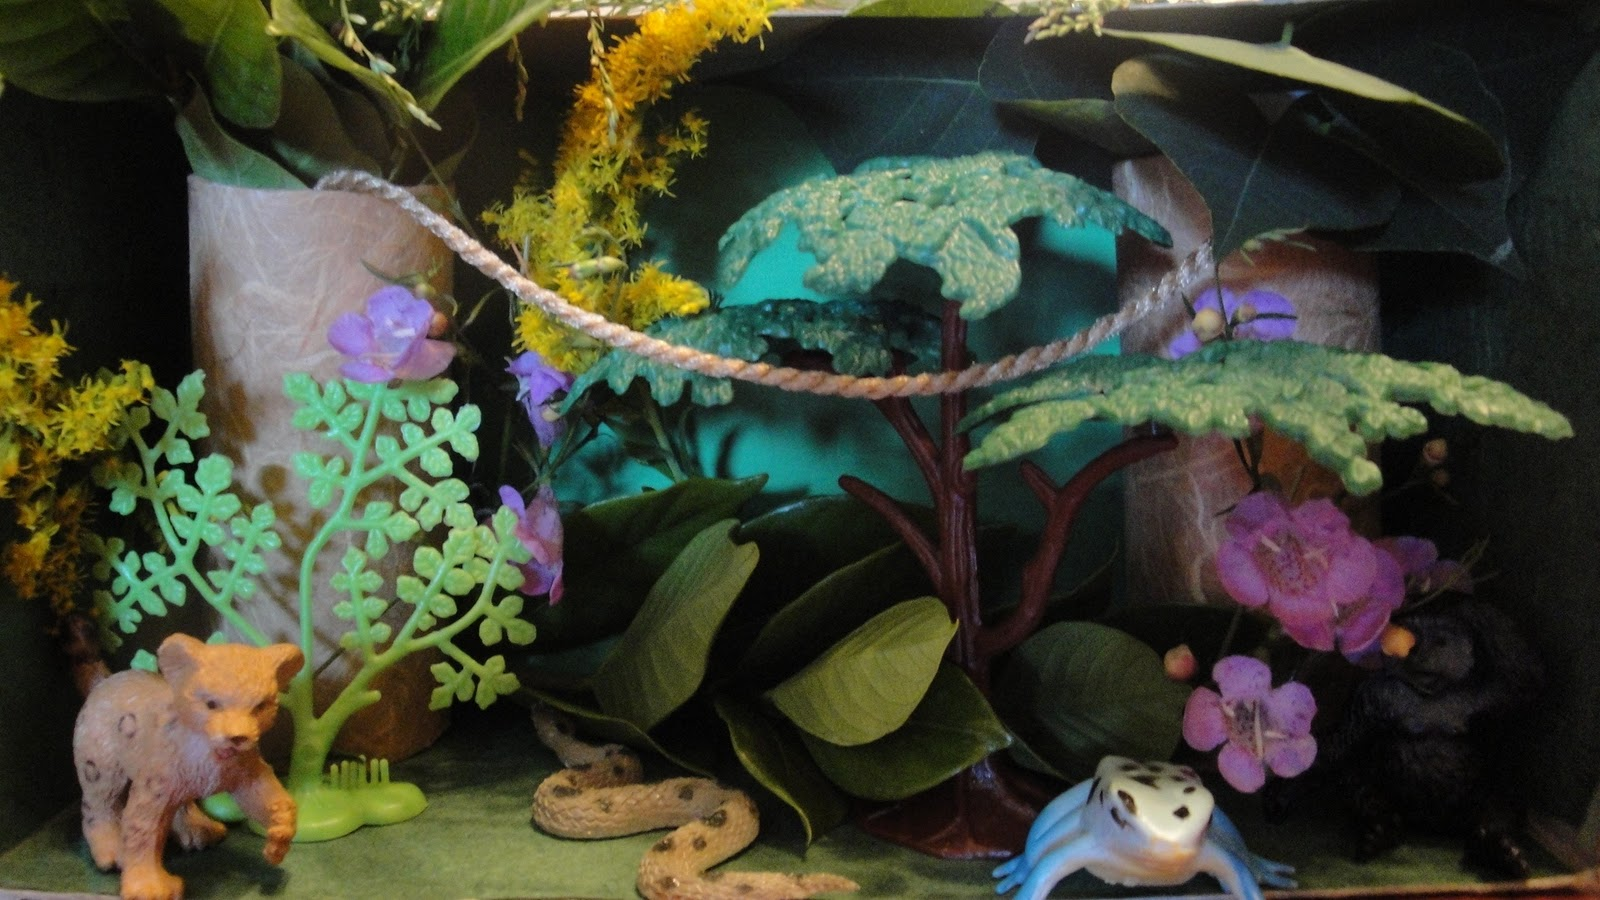 Example of Rain Forest Diorama http://homeschoolingmom2mags.blogspot.com/2011/10/rainforest-diorama-and-flapping-bats.html